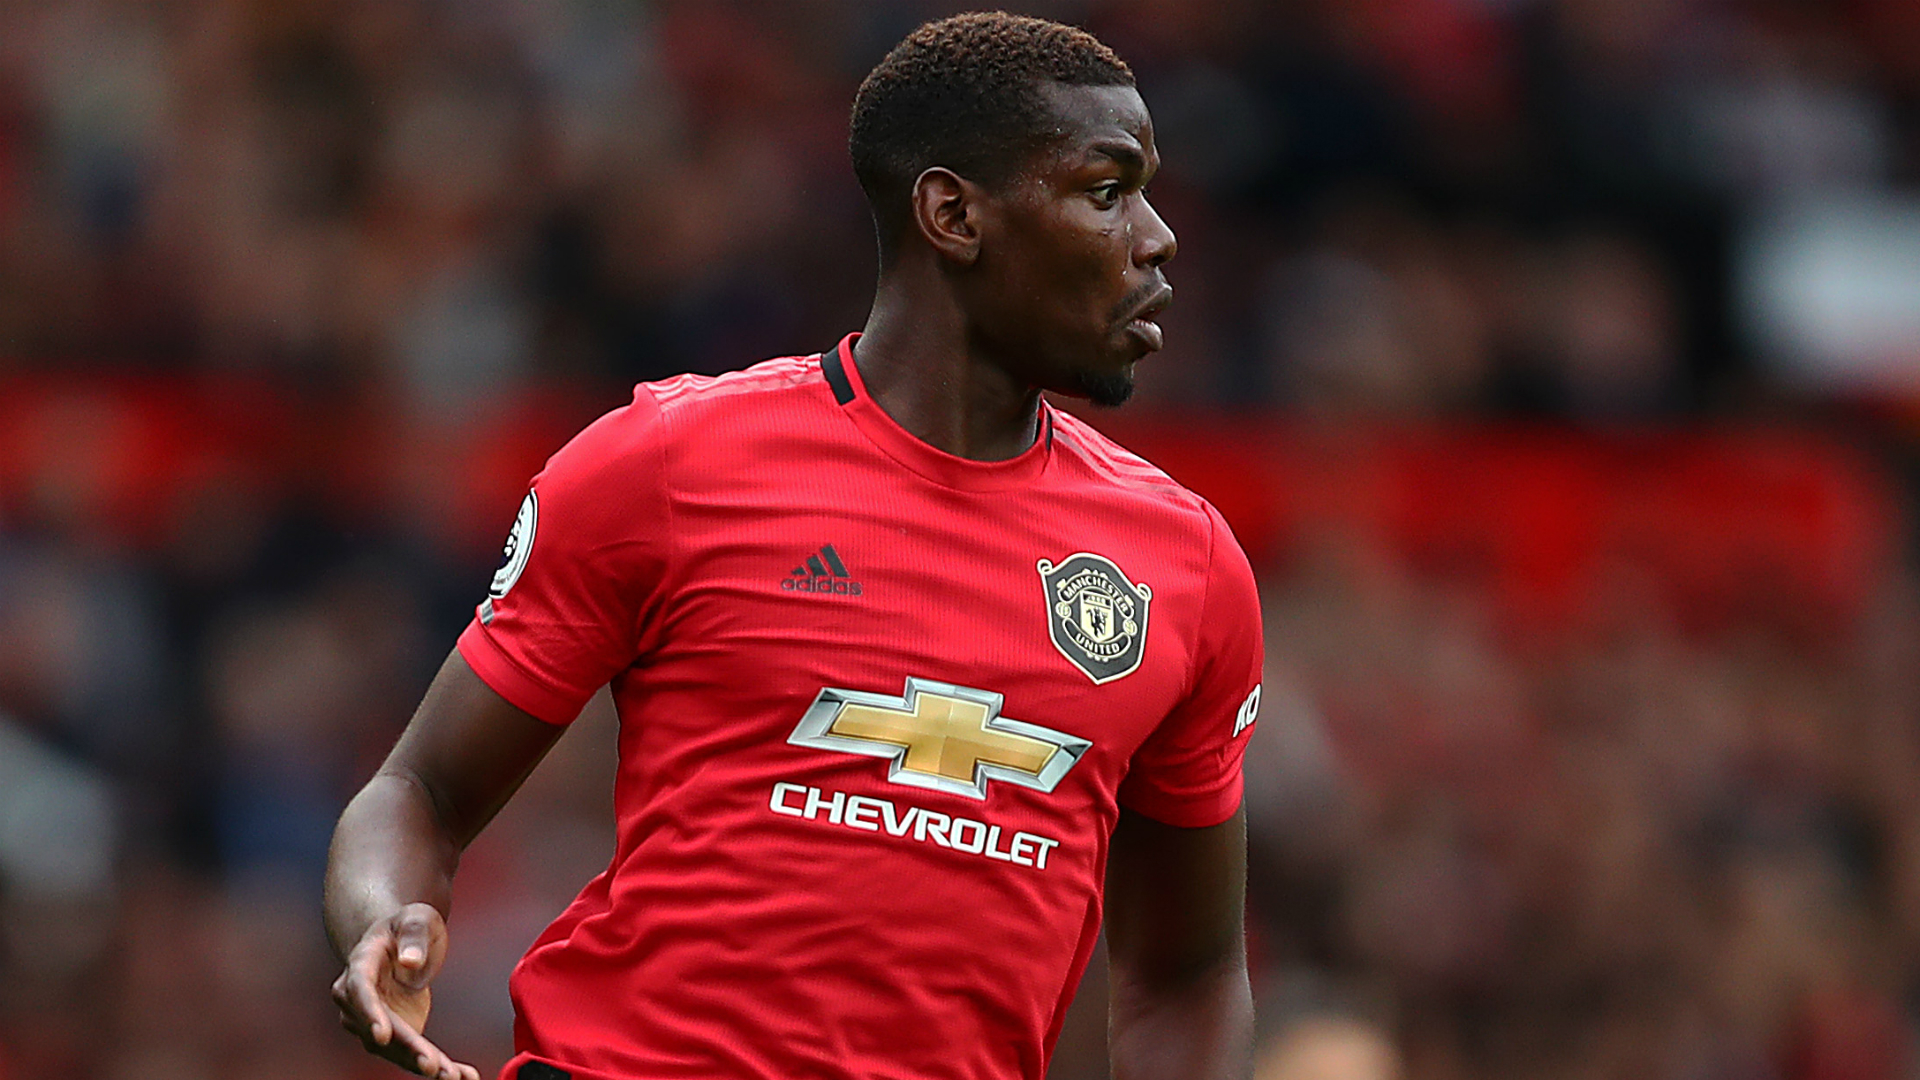 Pogba will stay at Manchester United – Evra